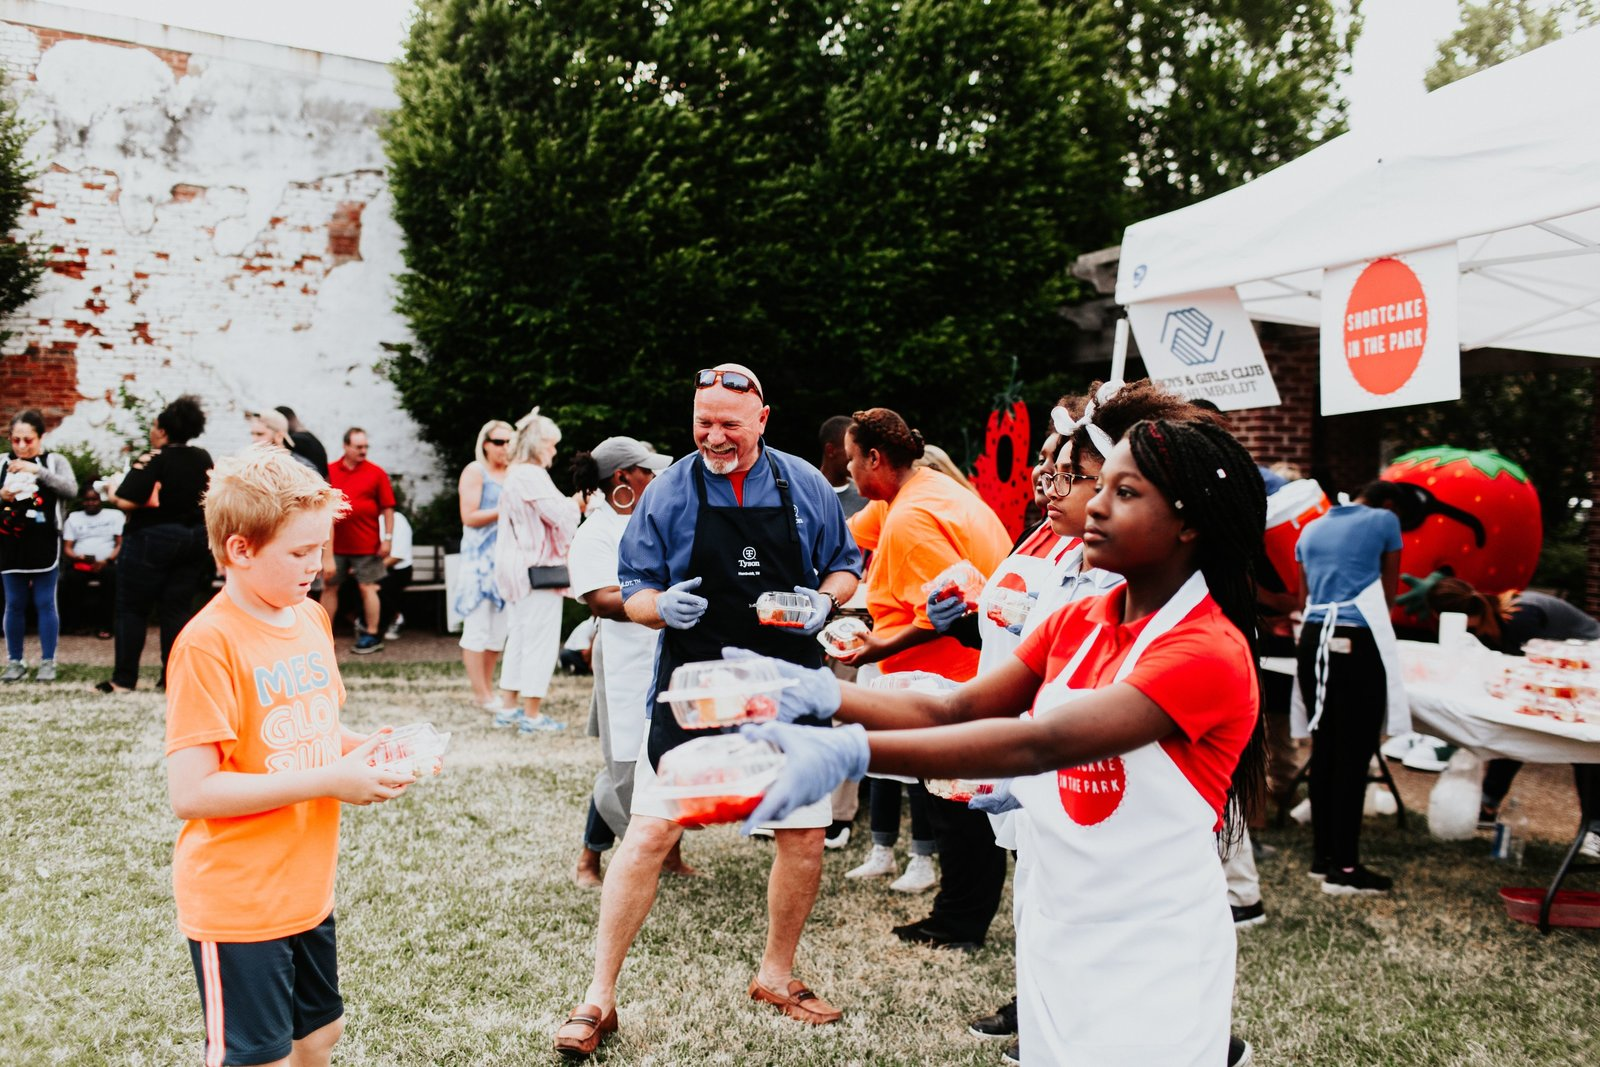 2019 West Tennessee Strawberry Festival - Shortcake in the park - 7